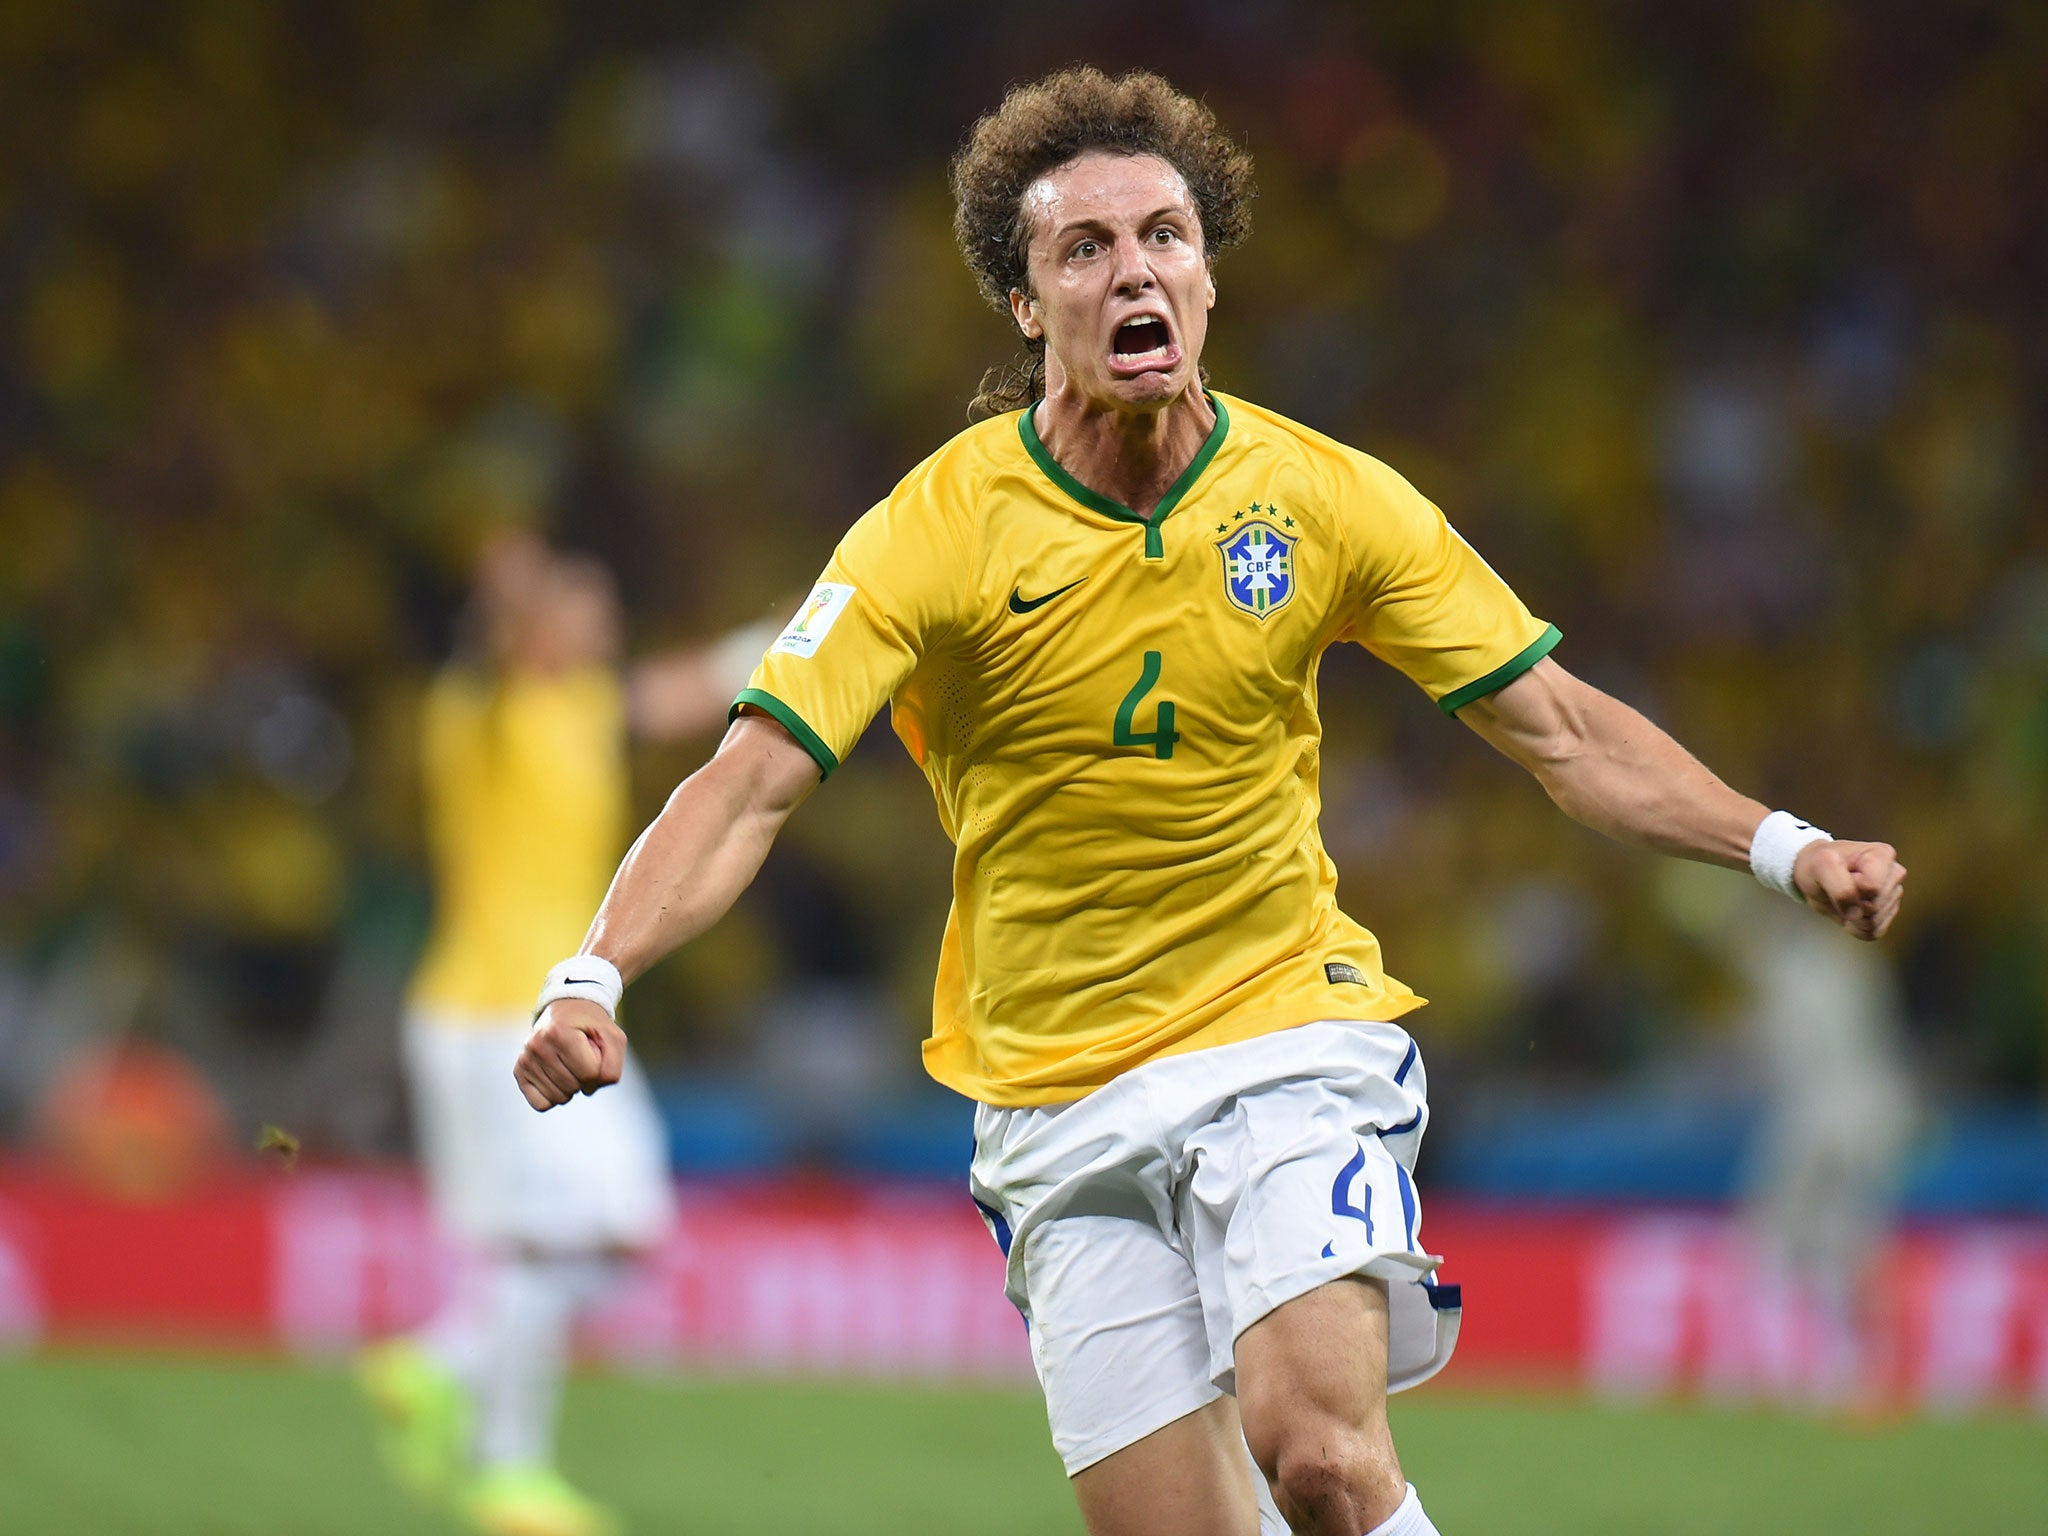 Brazil vs Germany World Cup 2014: Five reasons why Brazil will win the